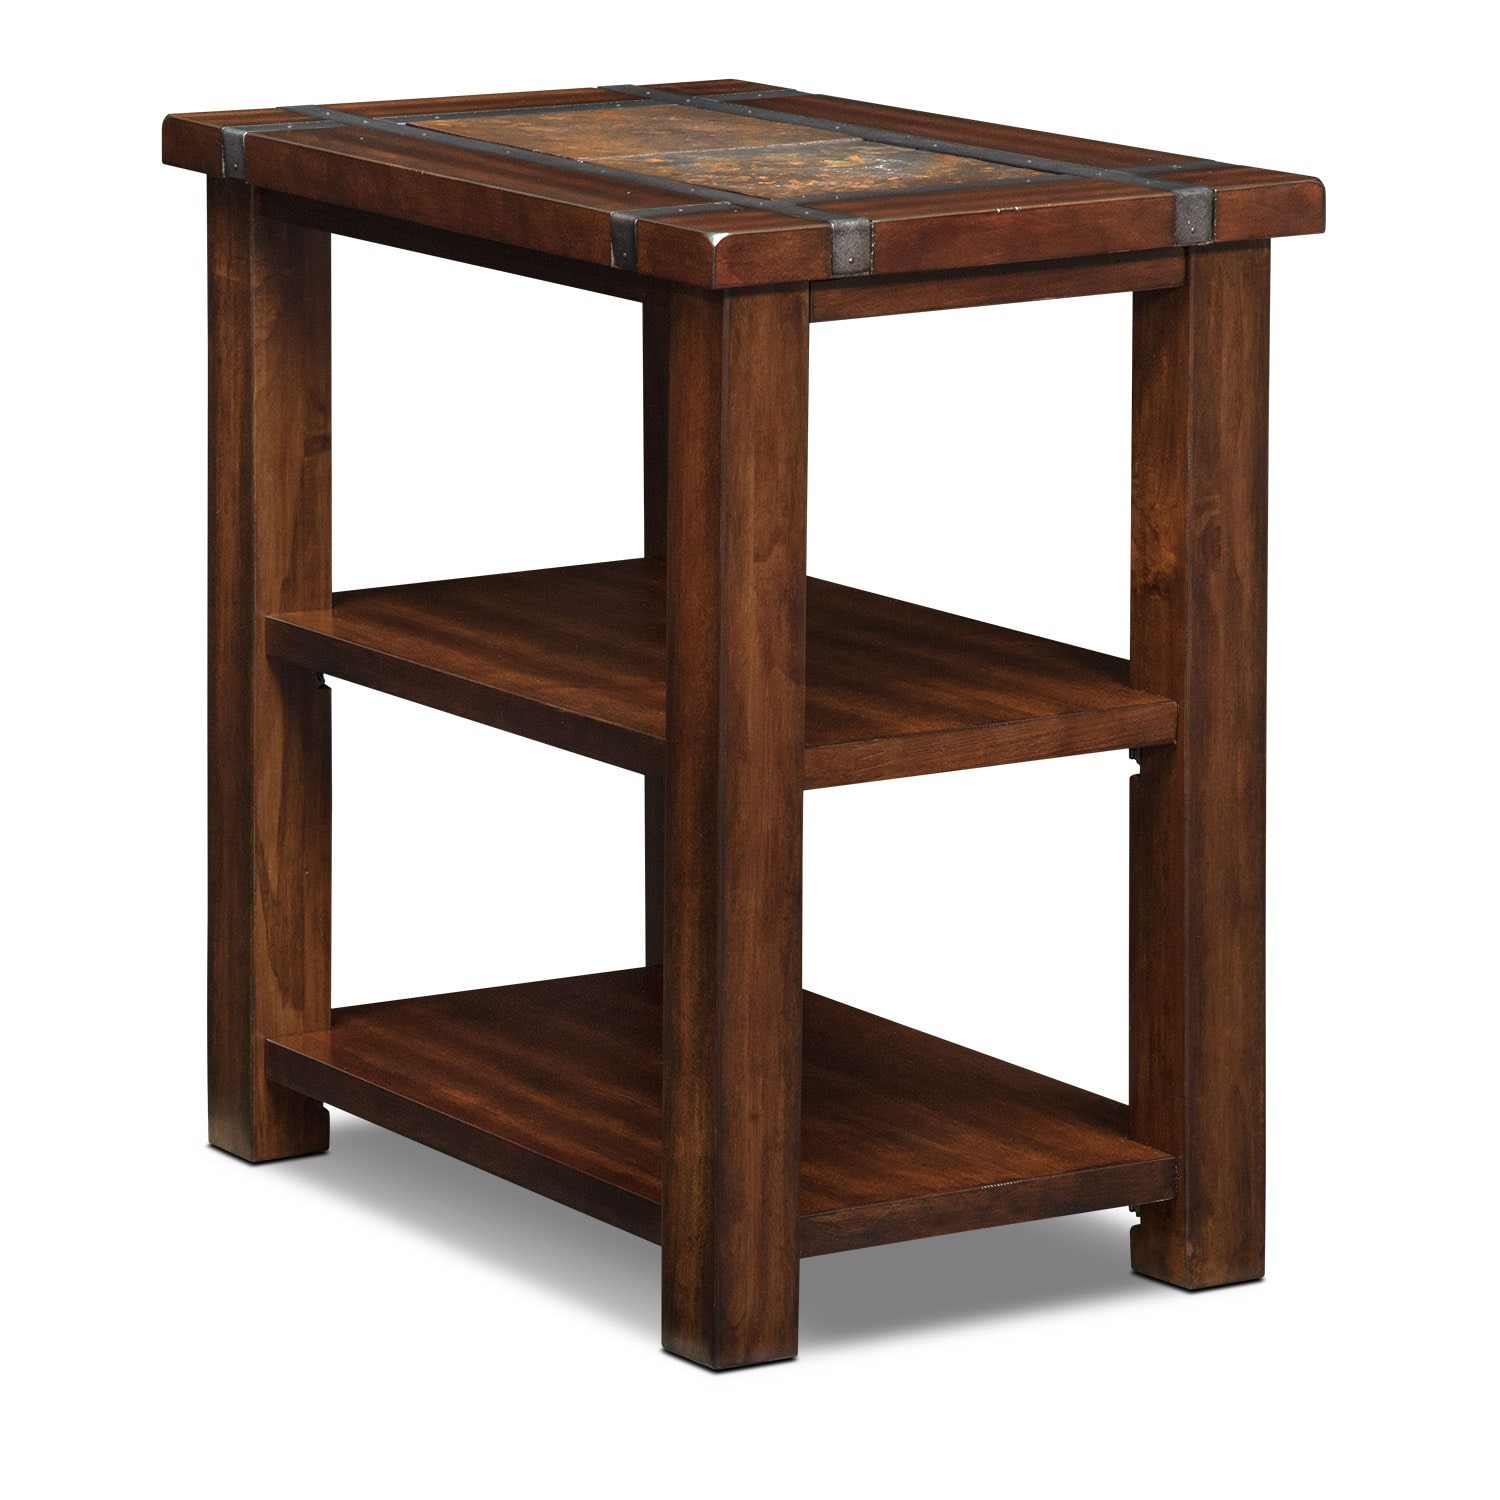 Accent and Occasional Furniture - Slate Ridge Chairside Table - Cherry